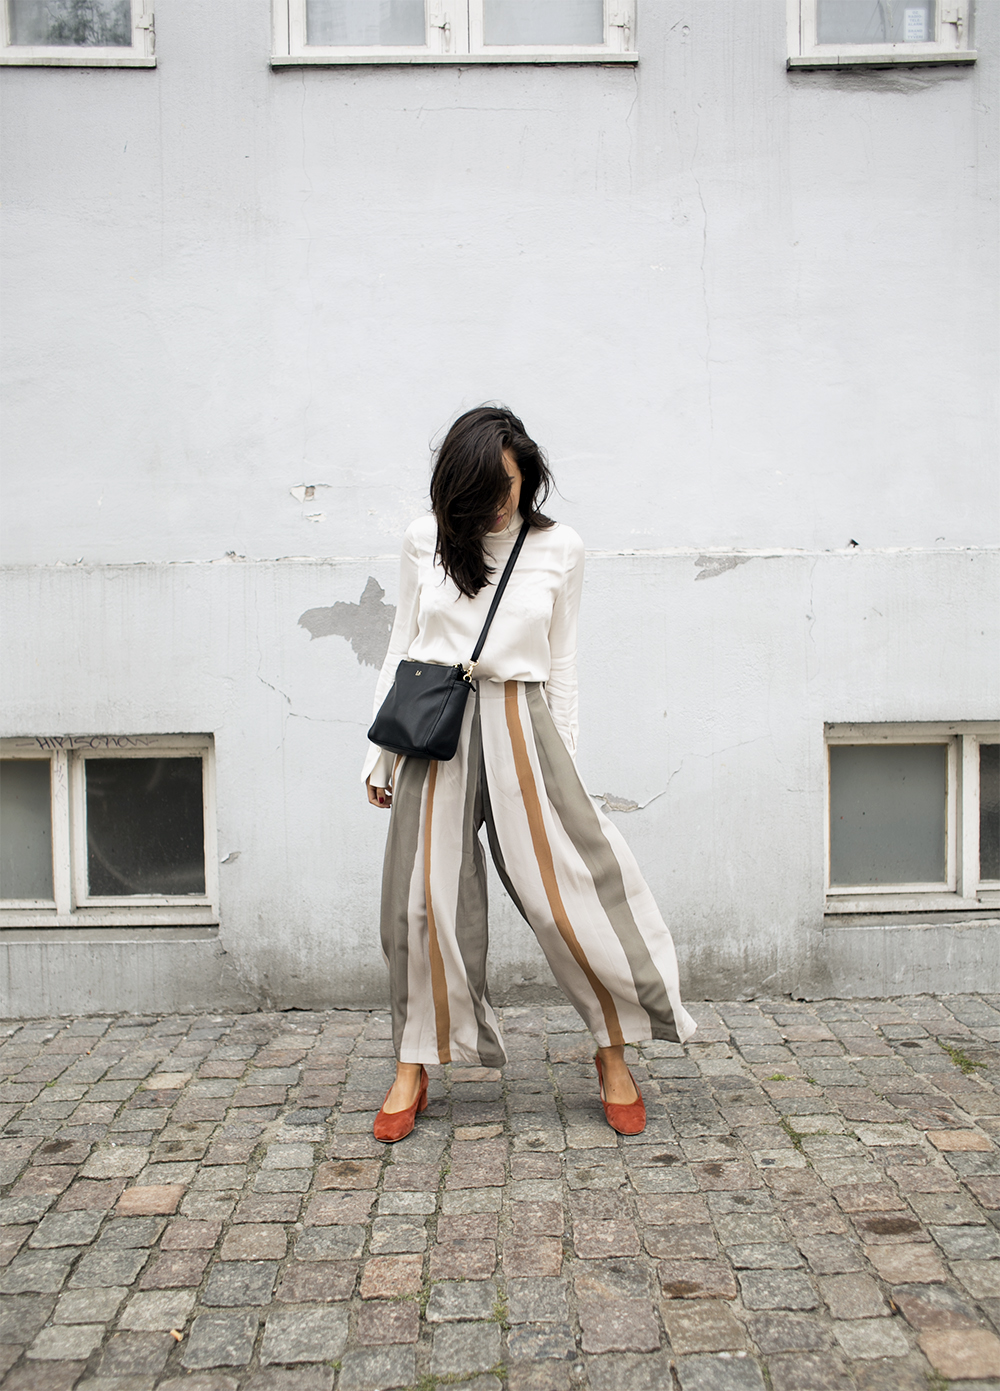 sania claus demina randiga byxor striped trousers pants suede pumps block heel ballerina by malene birger lo and sons bag the pearl_1